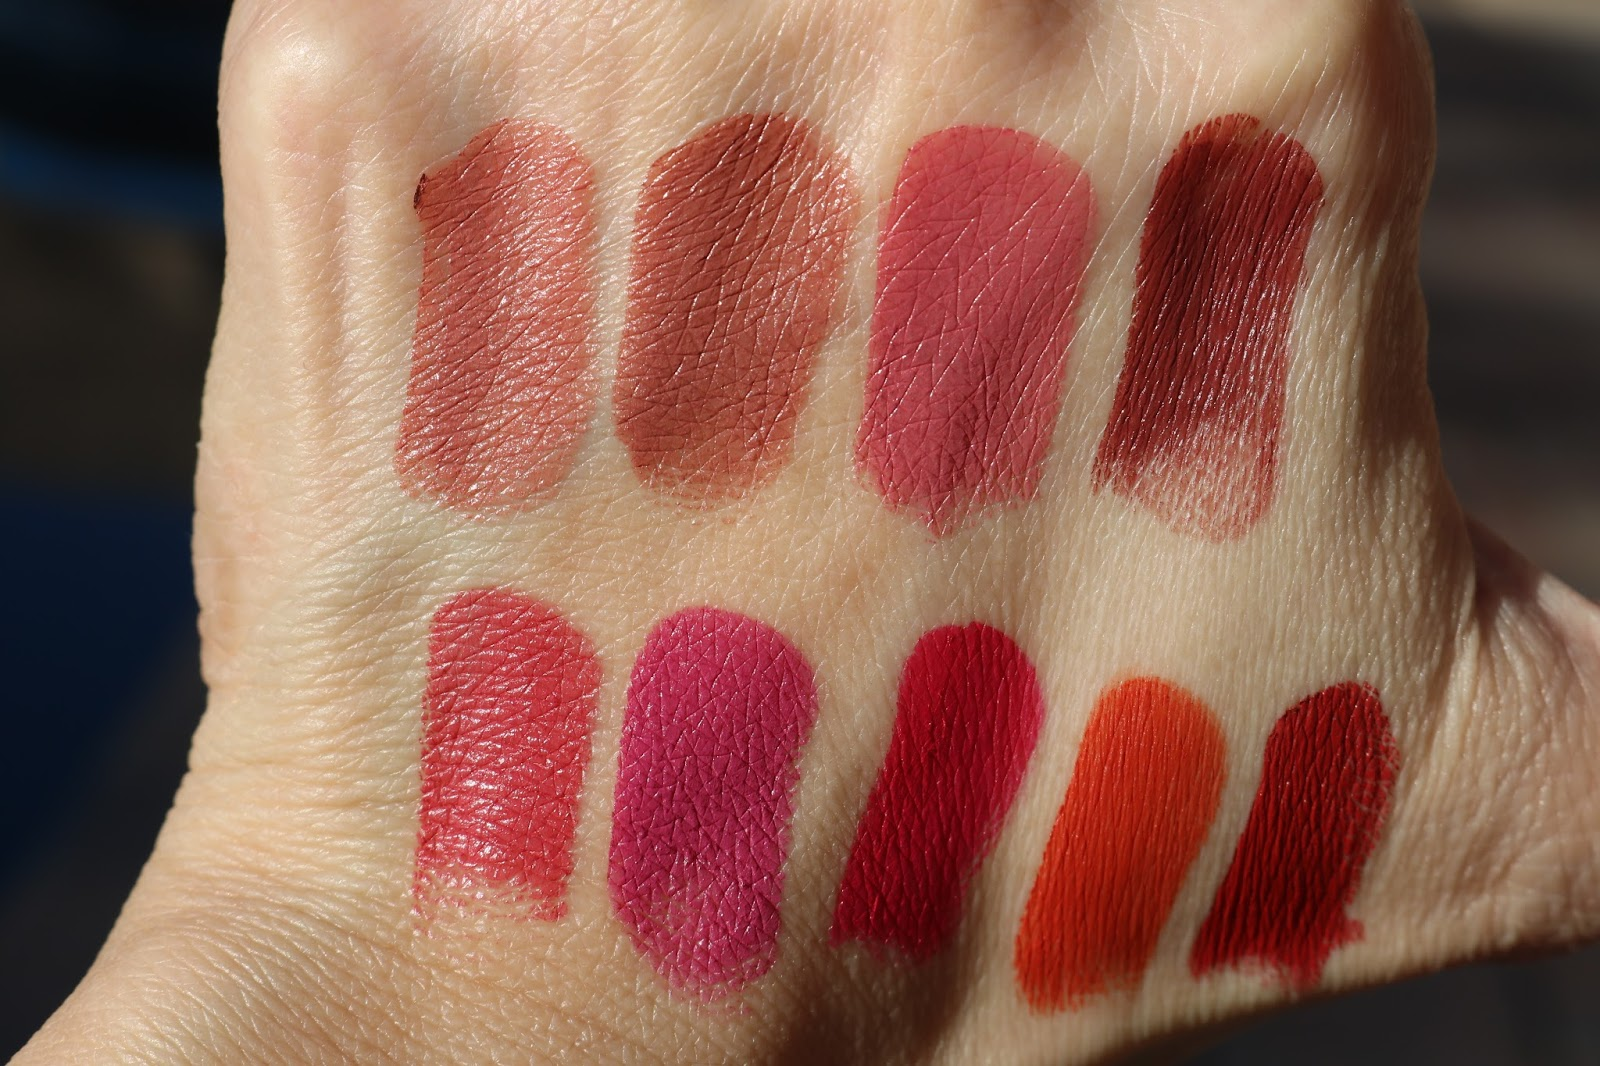 ColourPop Lux Lipsticks in Layover, Pinkies Up, Still Crazy, 27  Ghosted, Sitting Pretty, What If, Foolish, Liquid Courage